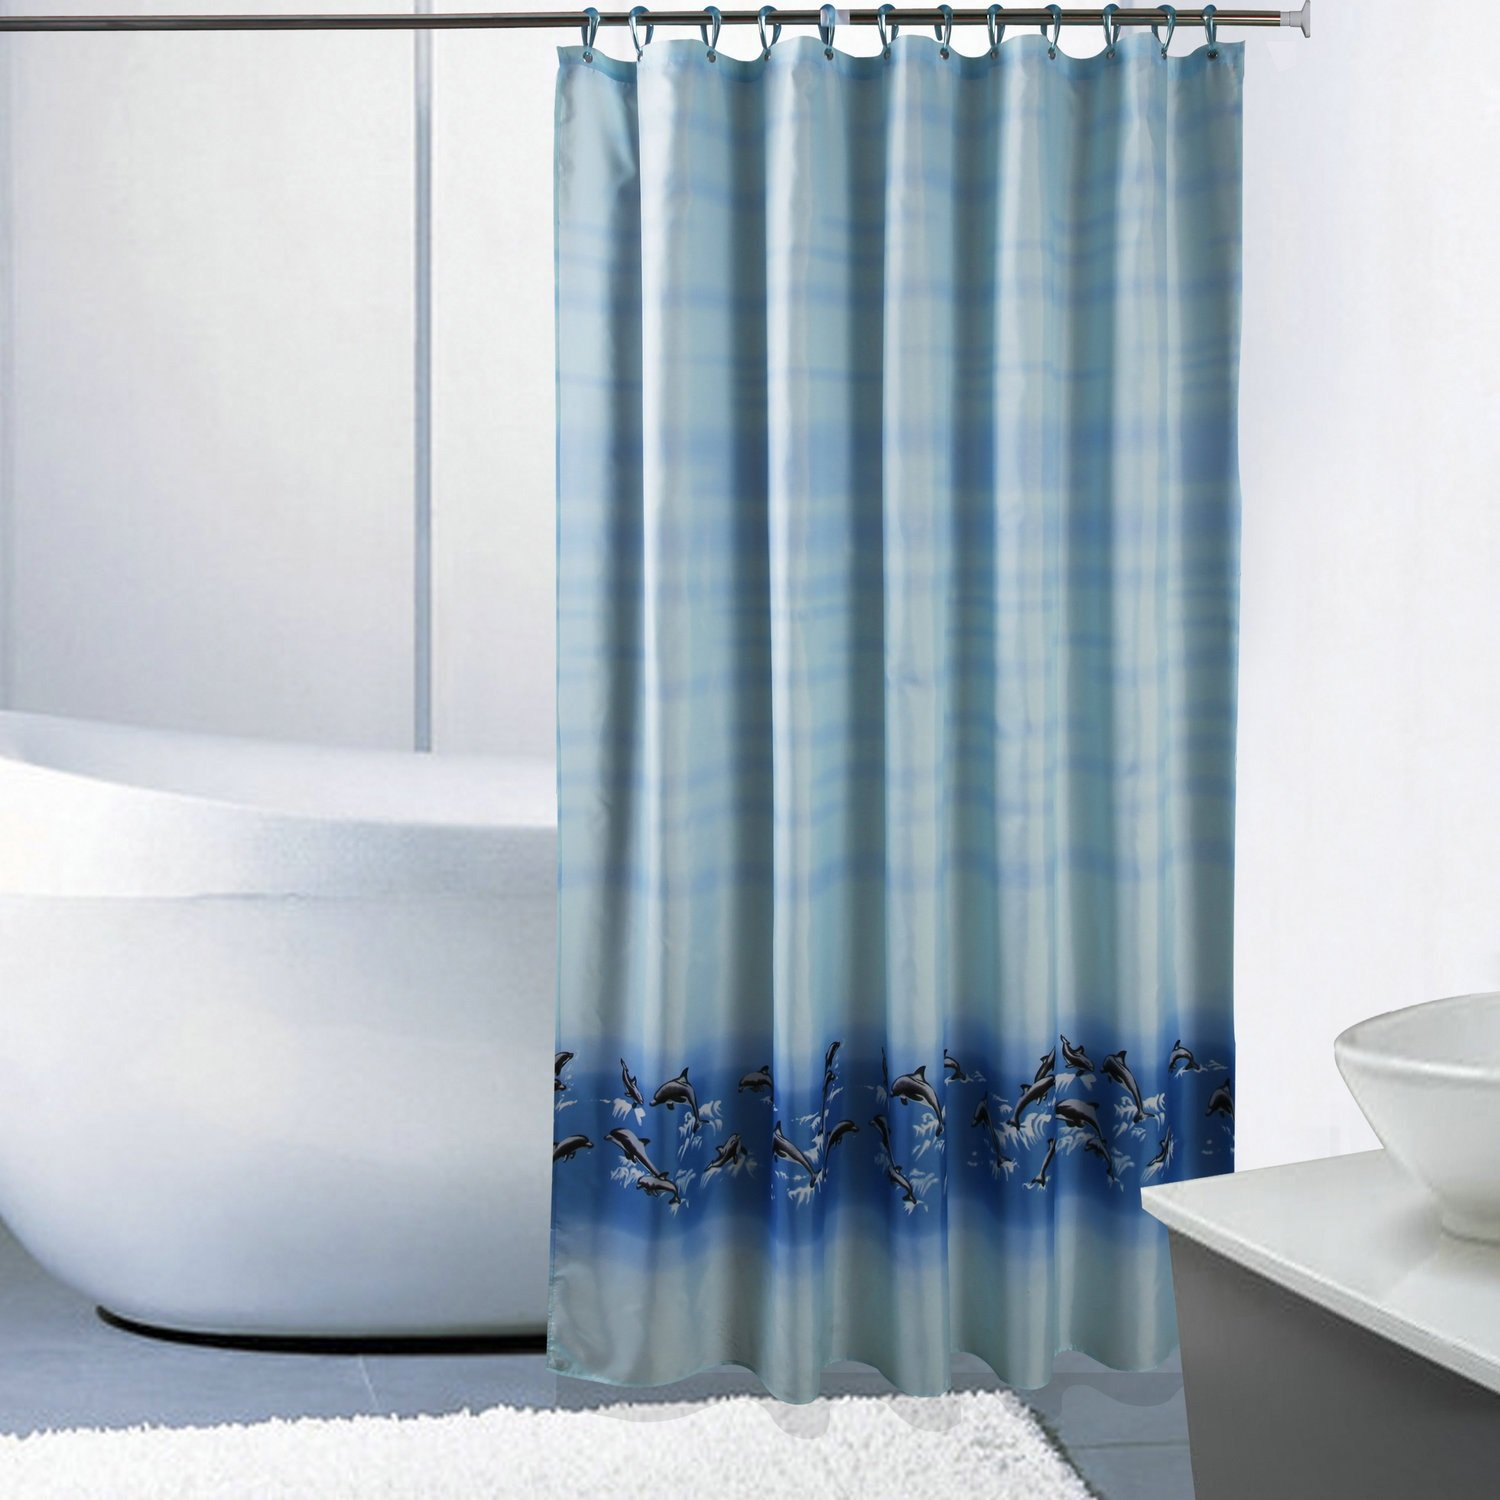 Curtain Mouldproof Waterproof Shower Curtain, Dolphin New, Thick Polyester Cloth Shower Curtain Shower Equipment (Size : 180200cm)